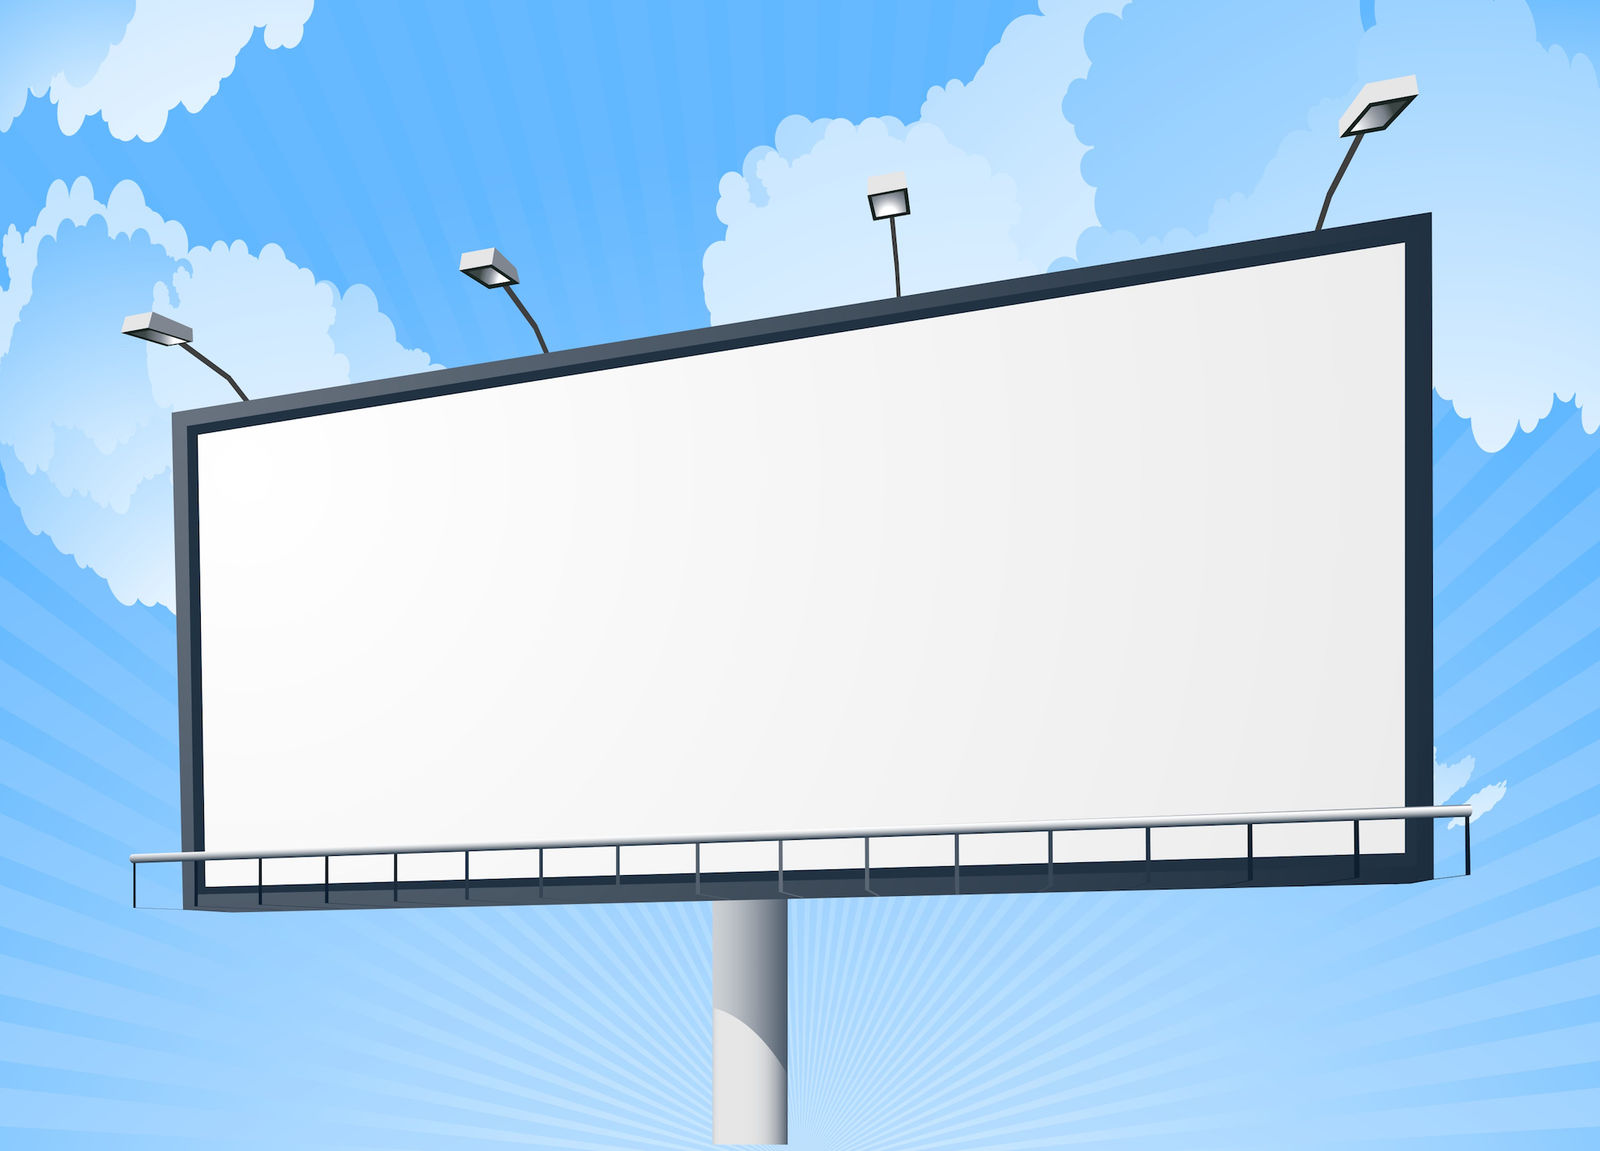 outdoor-advertising-constructions-vector_GyLQ1-wu_L